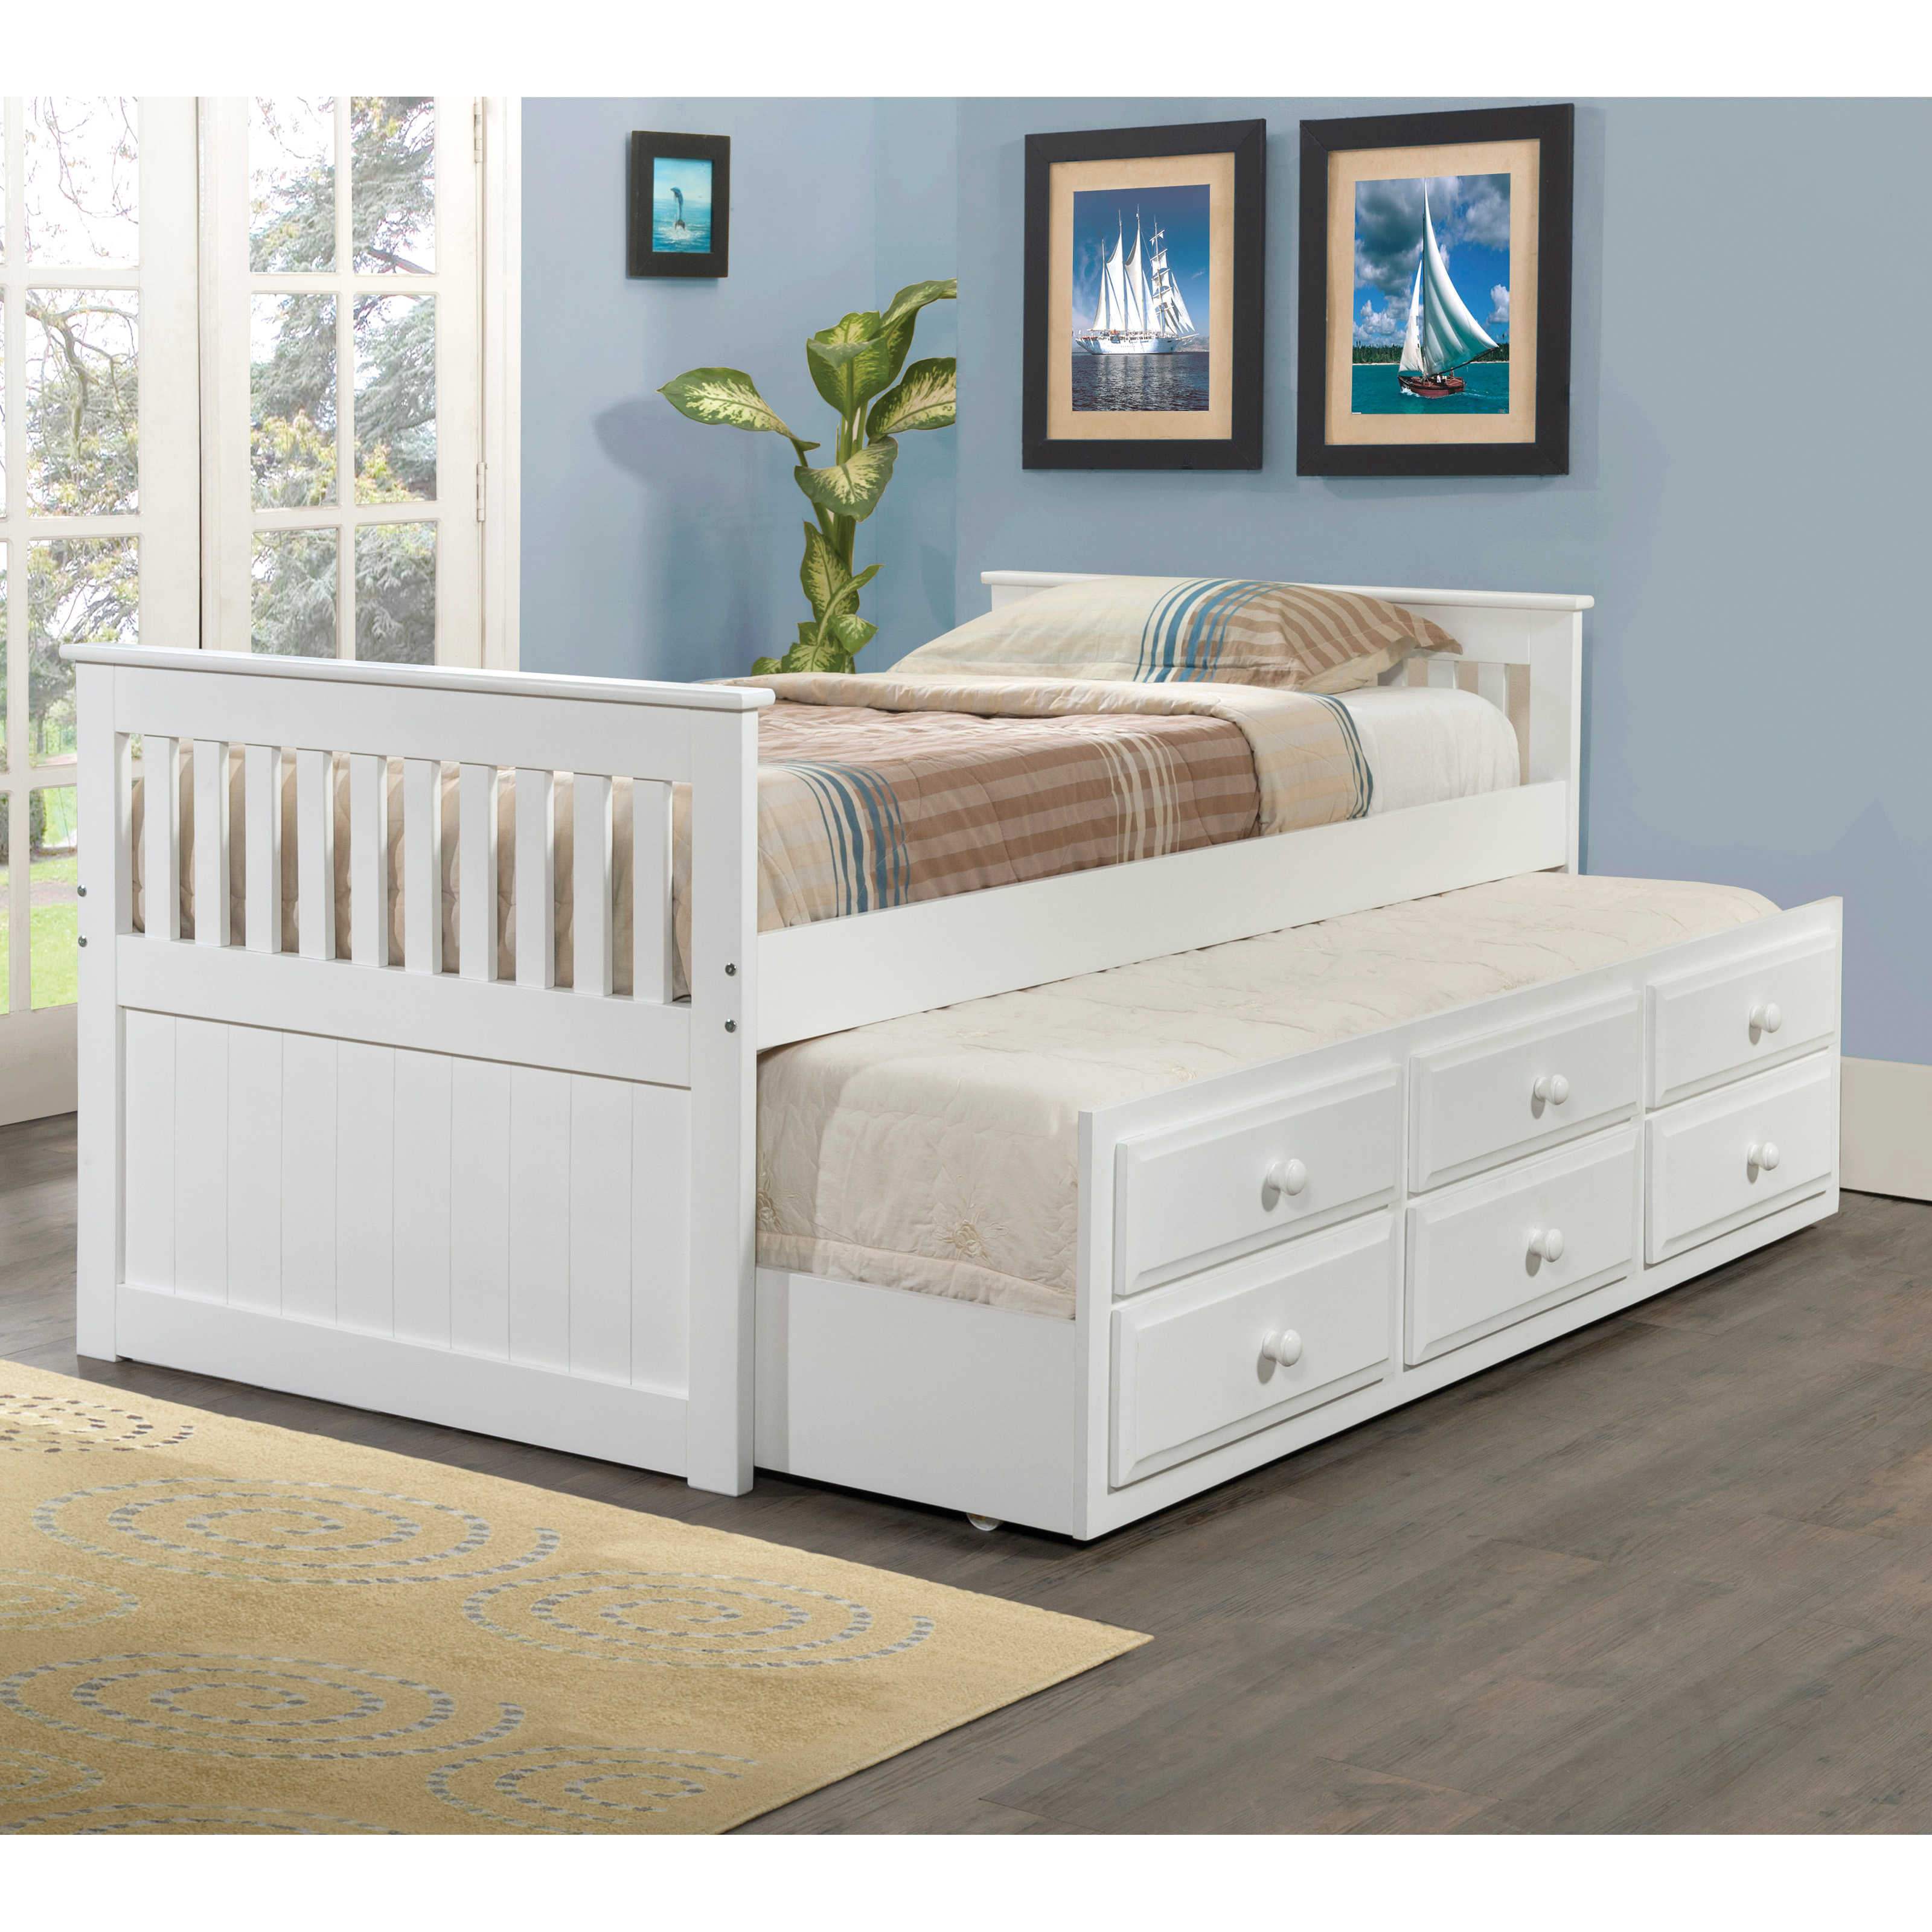 White Trundle Bed Donco Kids Captains Twin Trundle Bed White Ebay